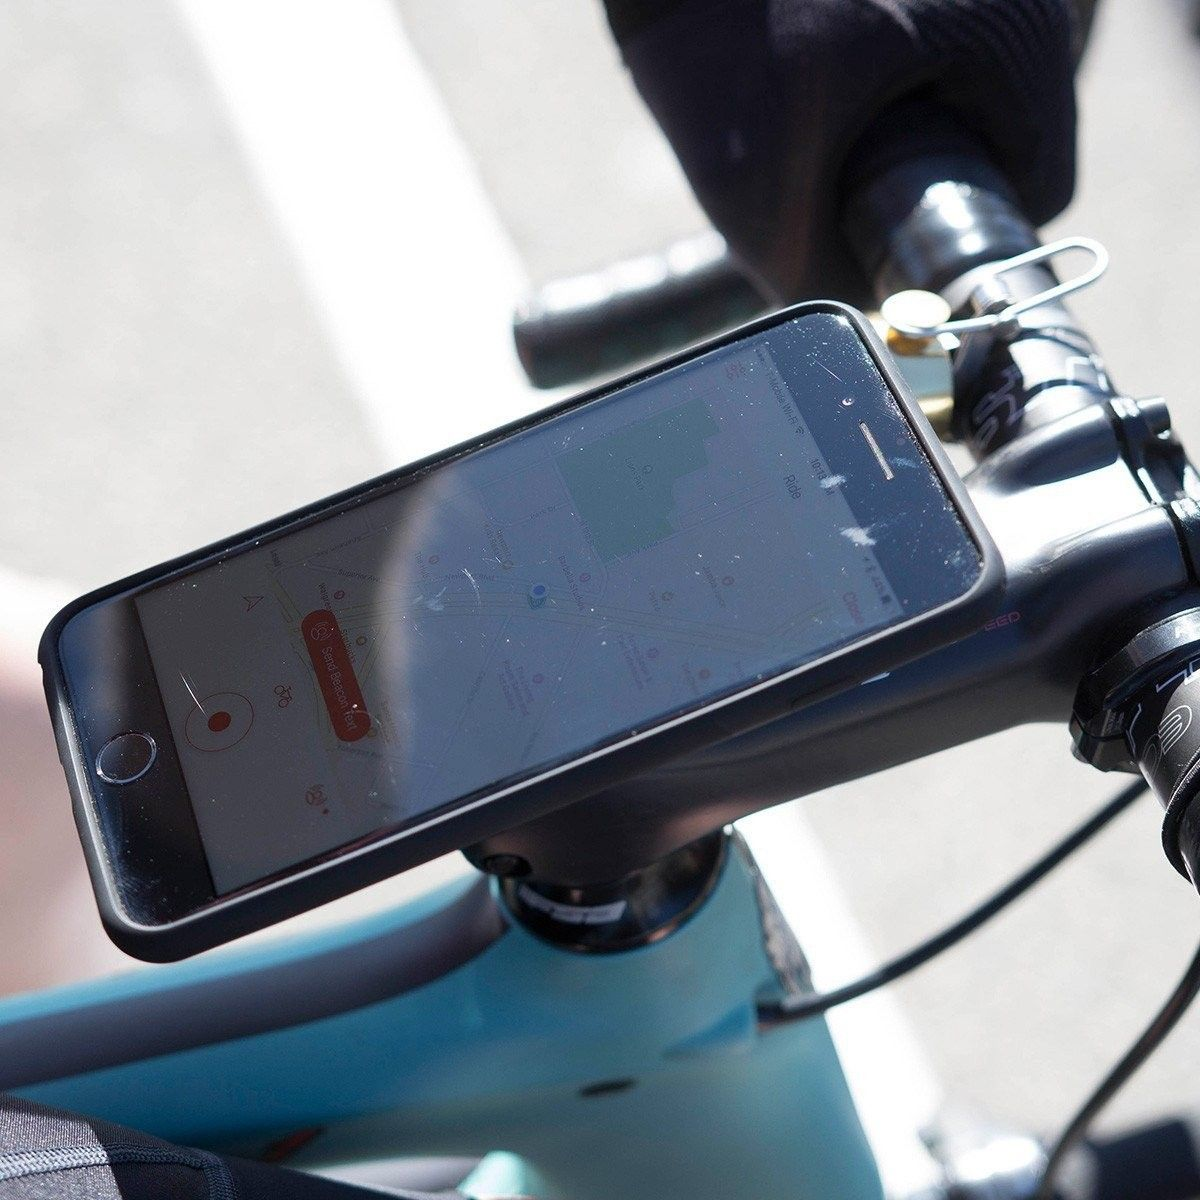 carcasa bici iphone 7